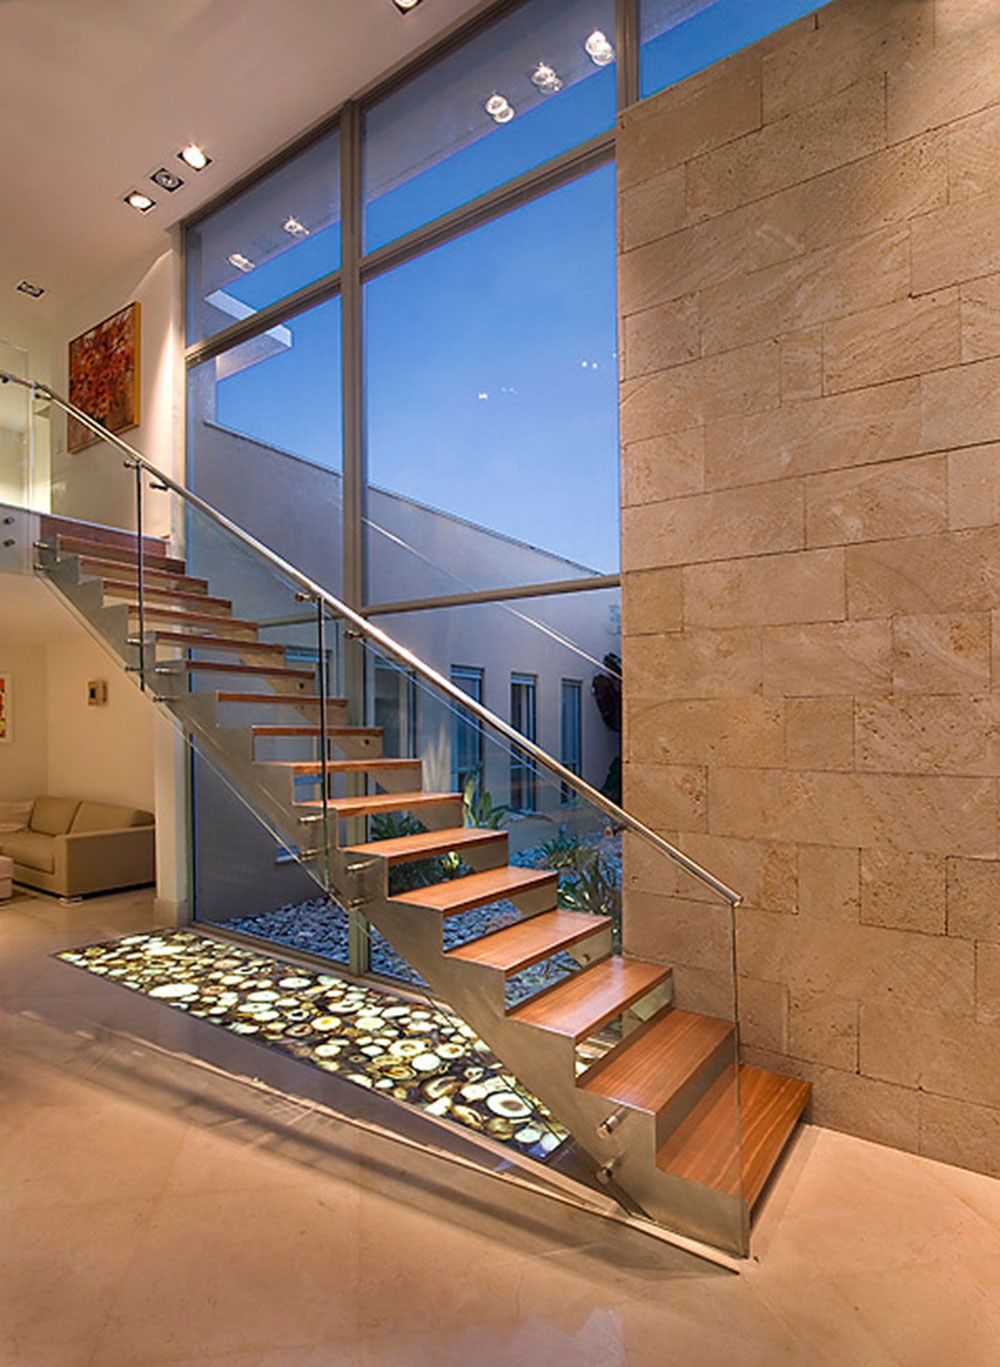 Modern and Exquisite Floating Staircase3 Modern and exquisite floating staircase designs